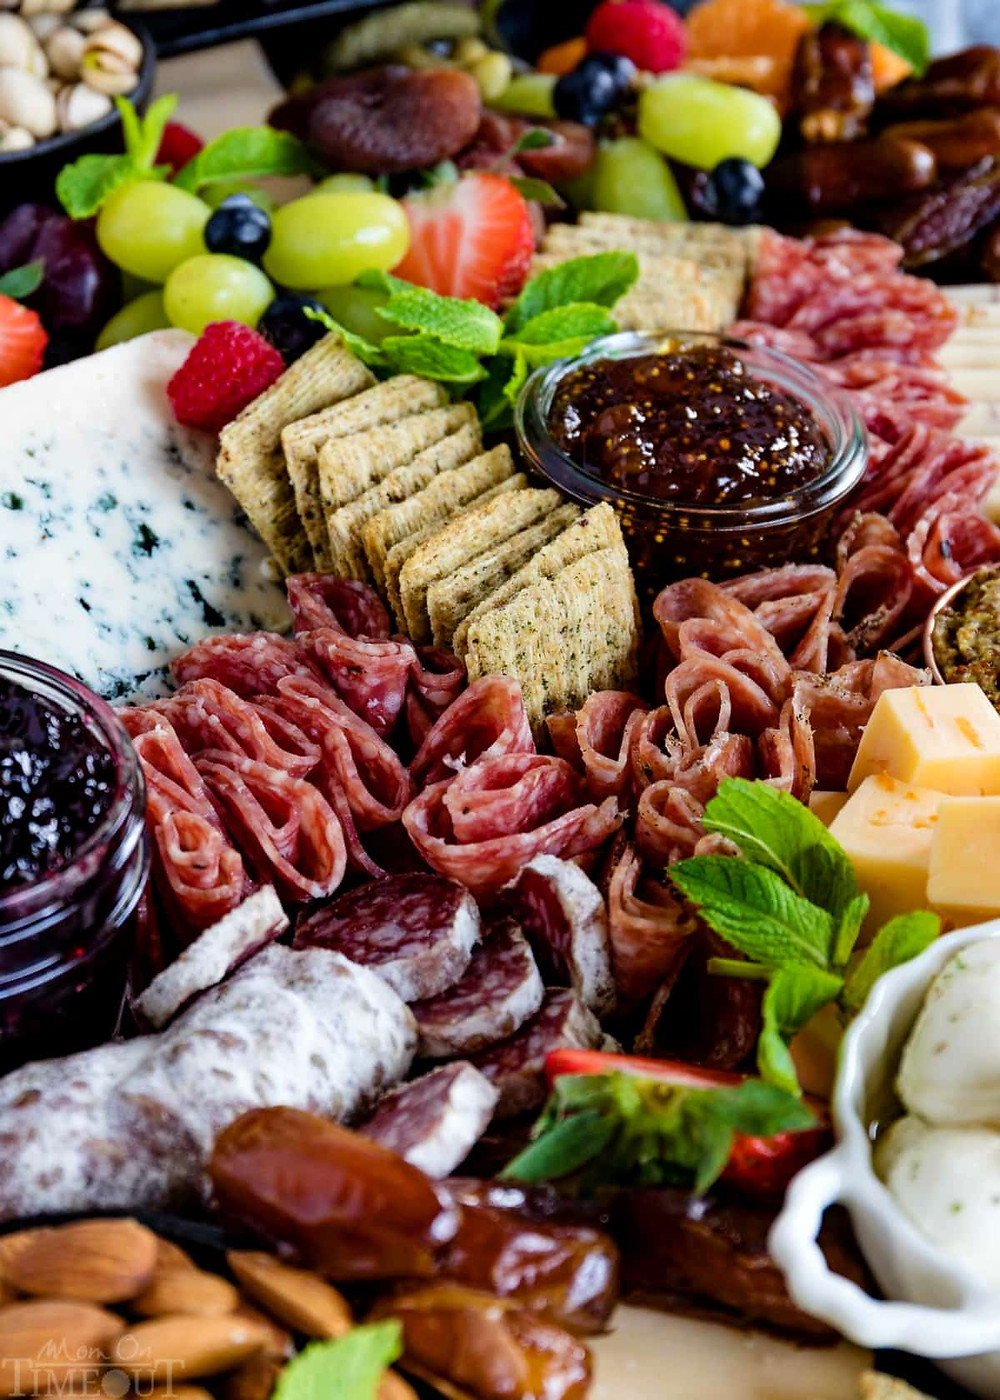 Meat, cheese and fruit platter